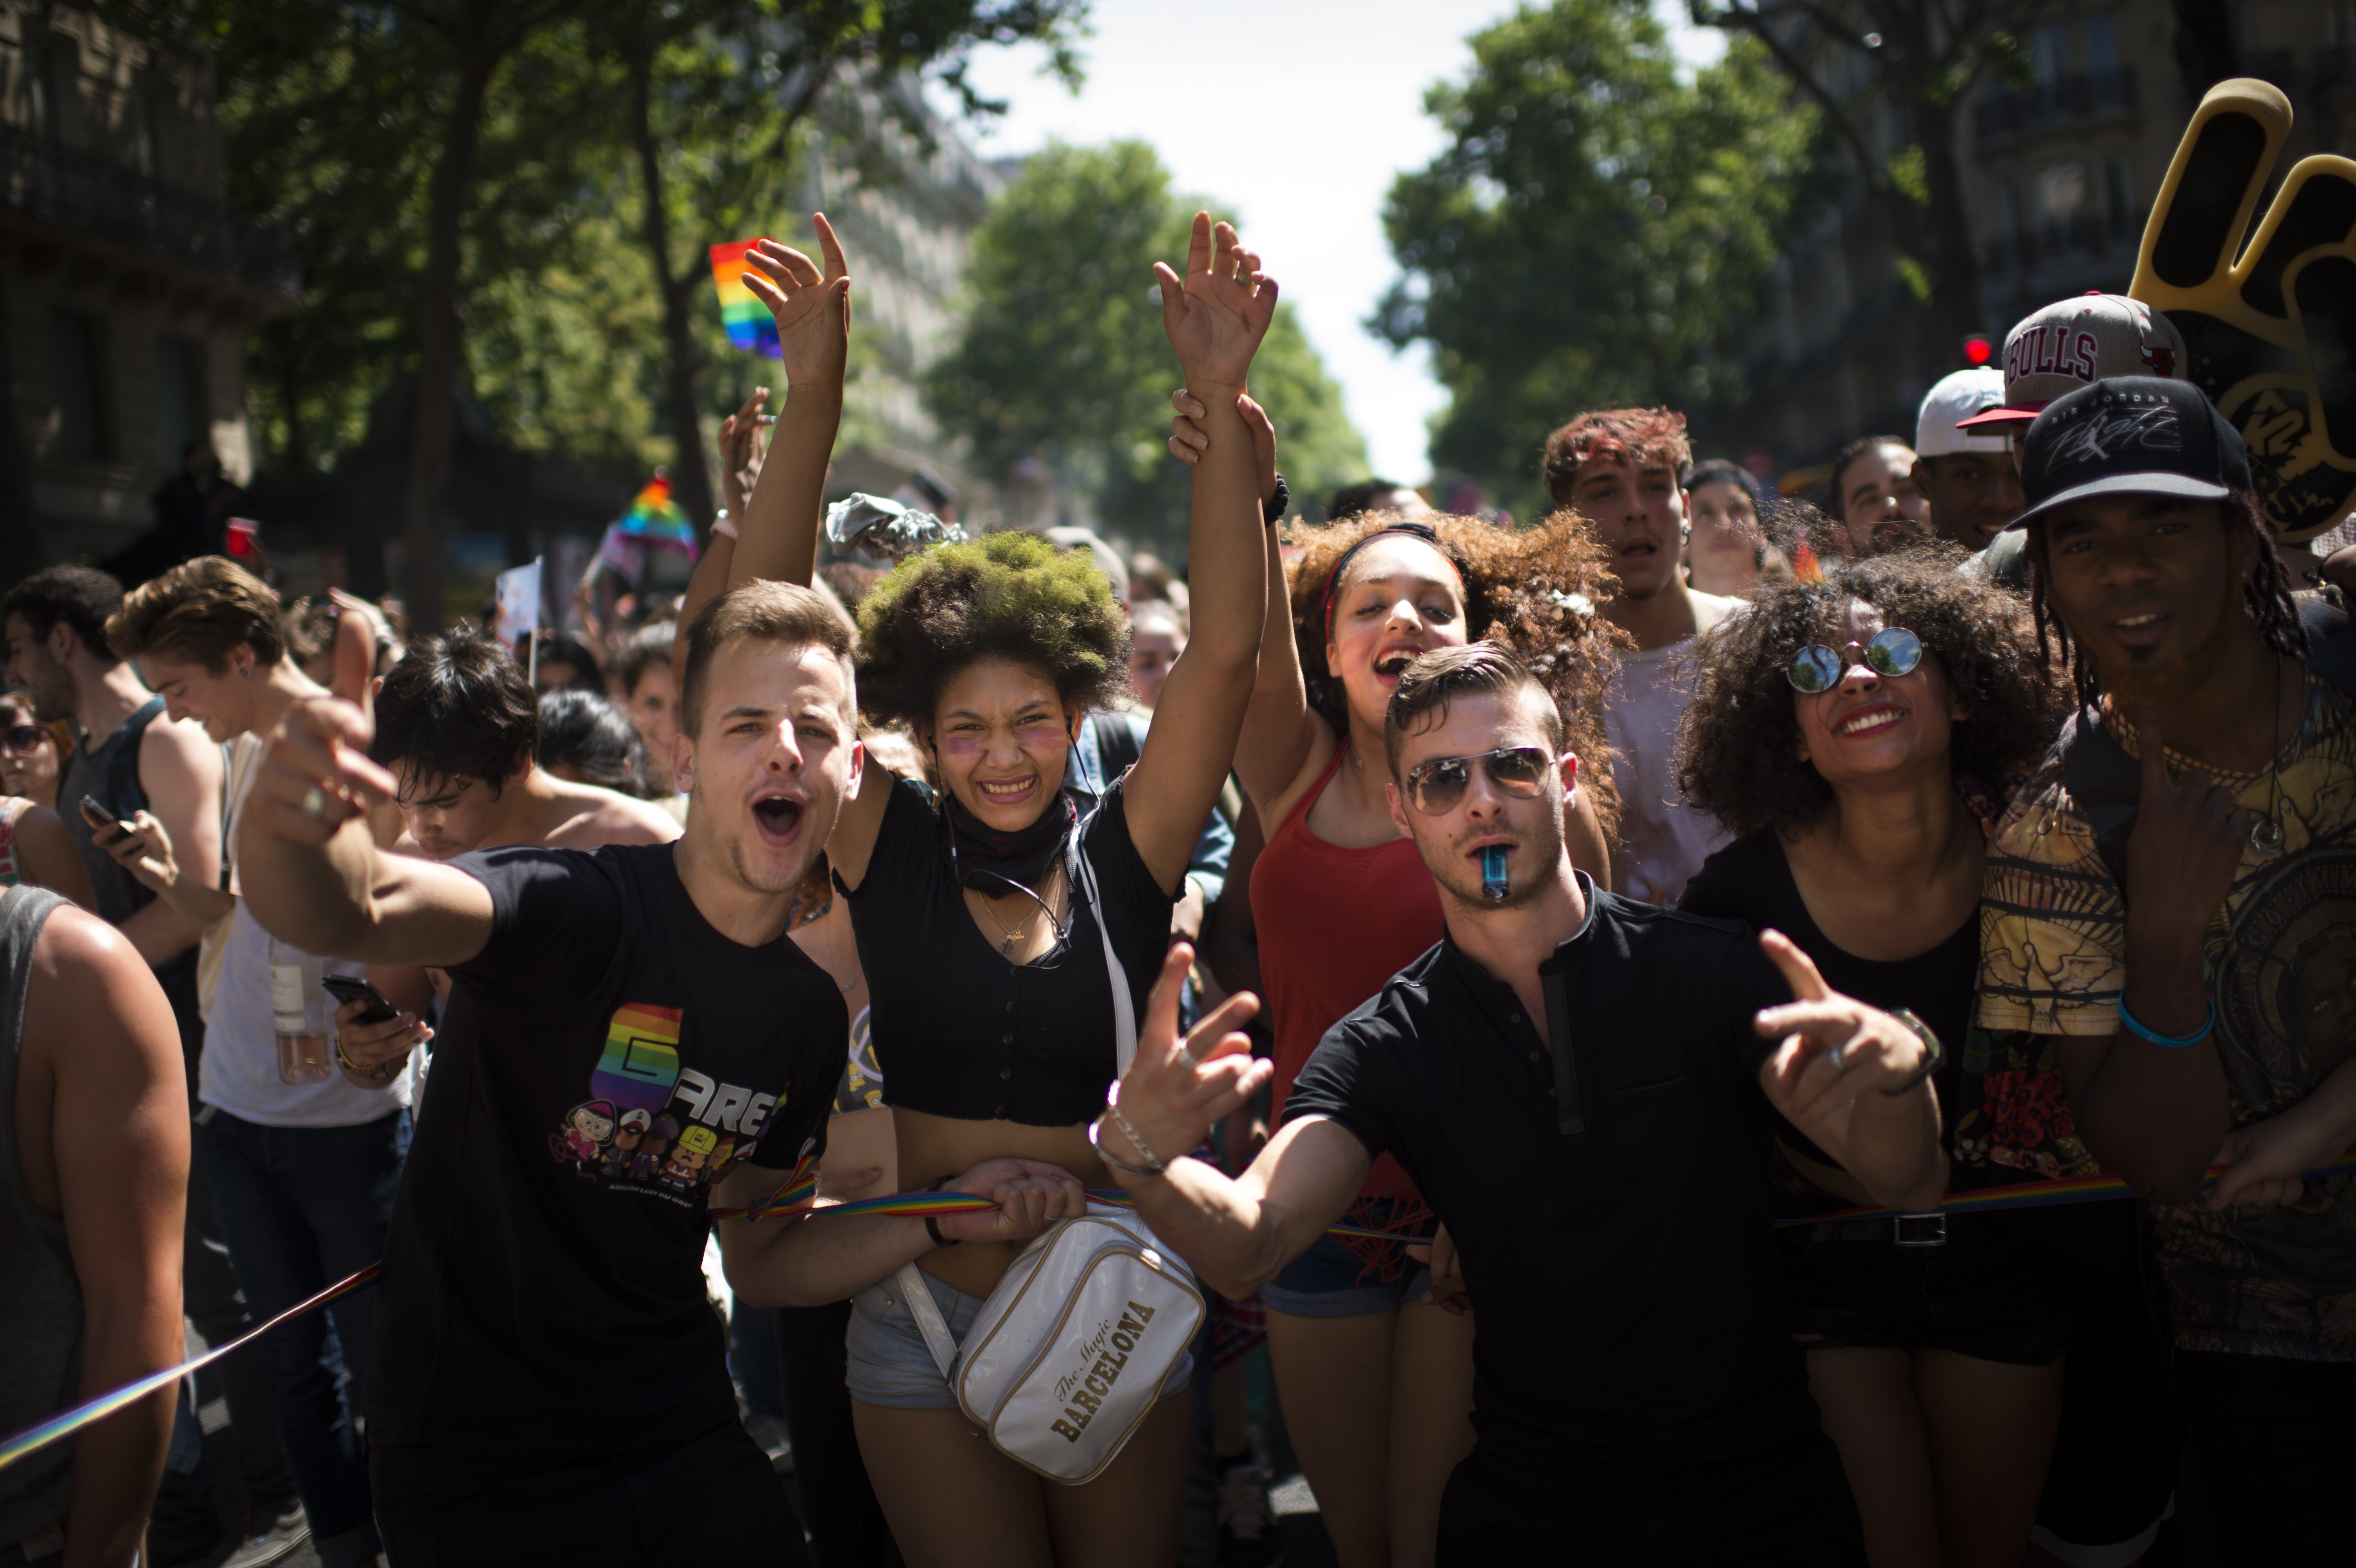 People take part in the annual Gay Pride homosexual, bisexual and transgender visibility march on June 27, 2015 in Paris. AFP PHOTO / MARTIN BUREAU (Photo credit should read MARTIN BUREAU/AFP/Getty Images)